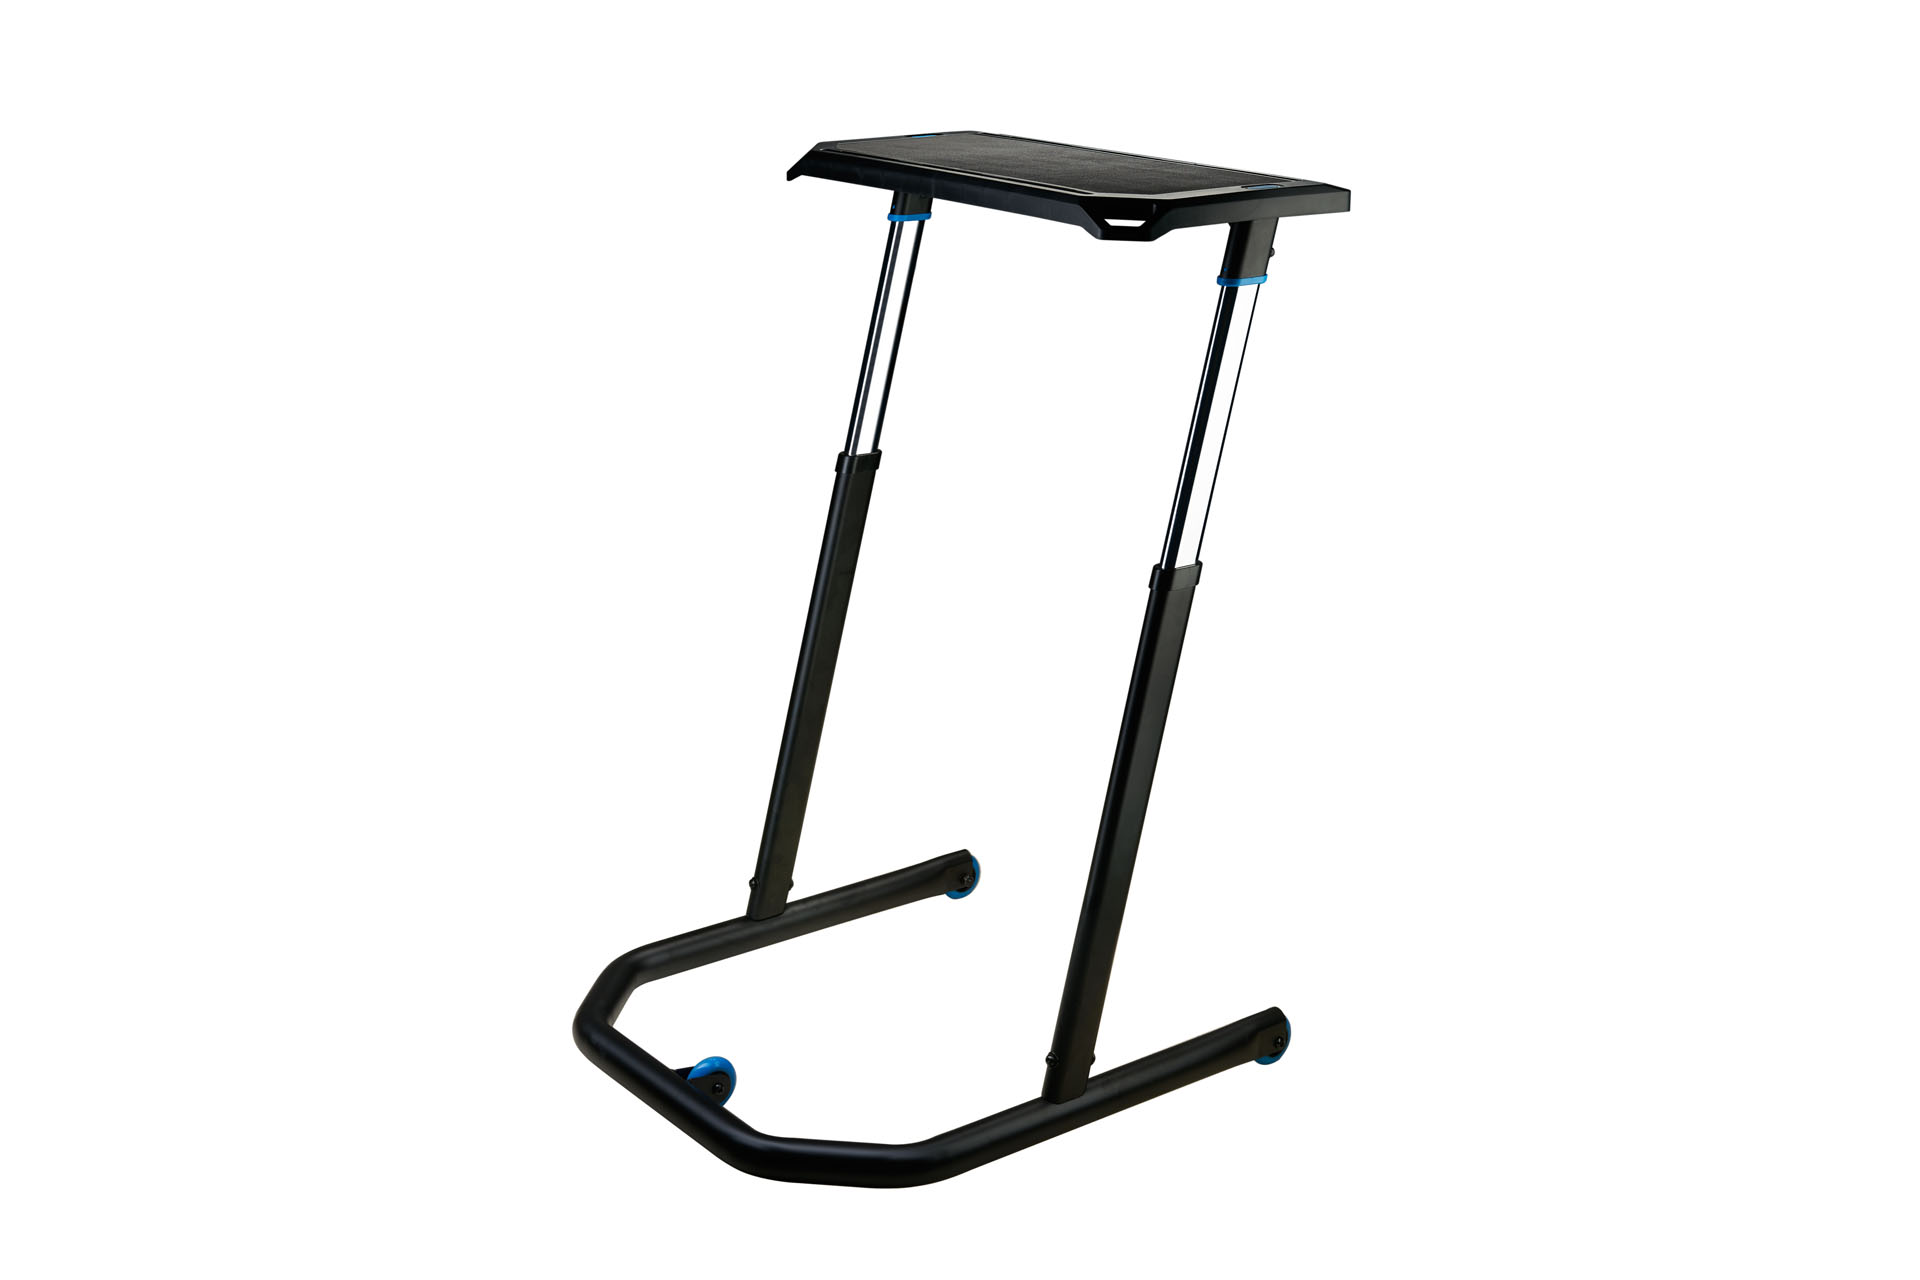 KICKR Indoor Cycling Desk-Picture-01